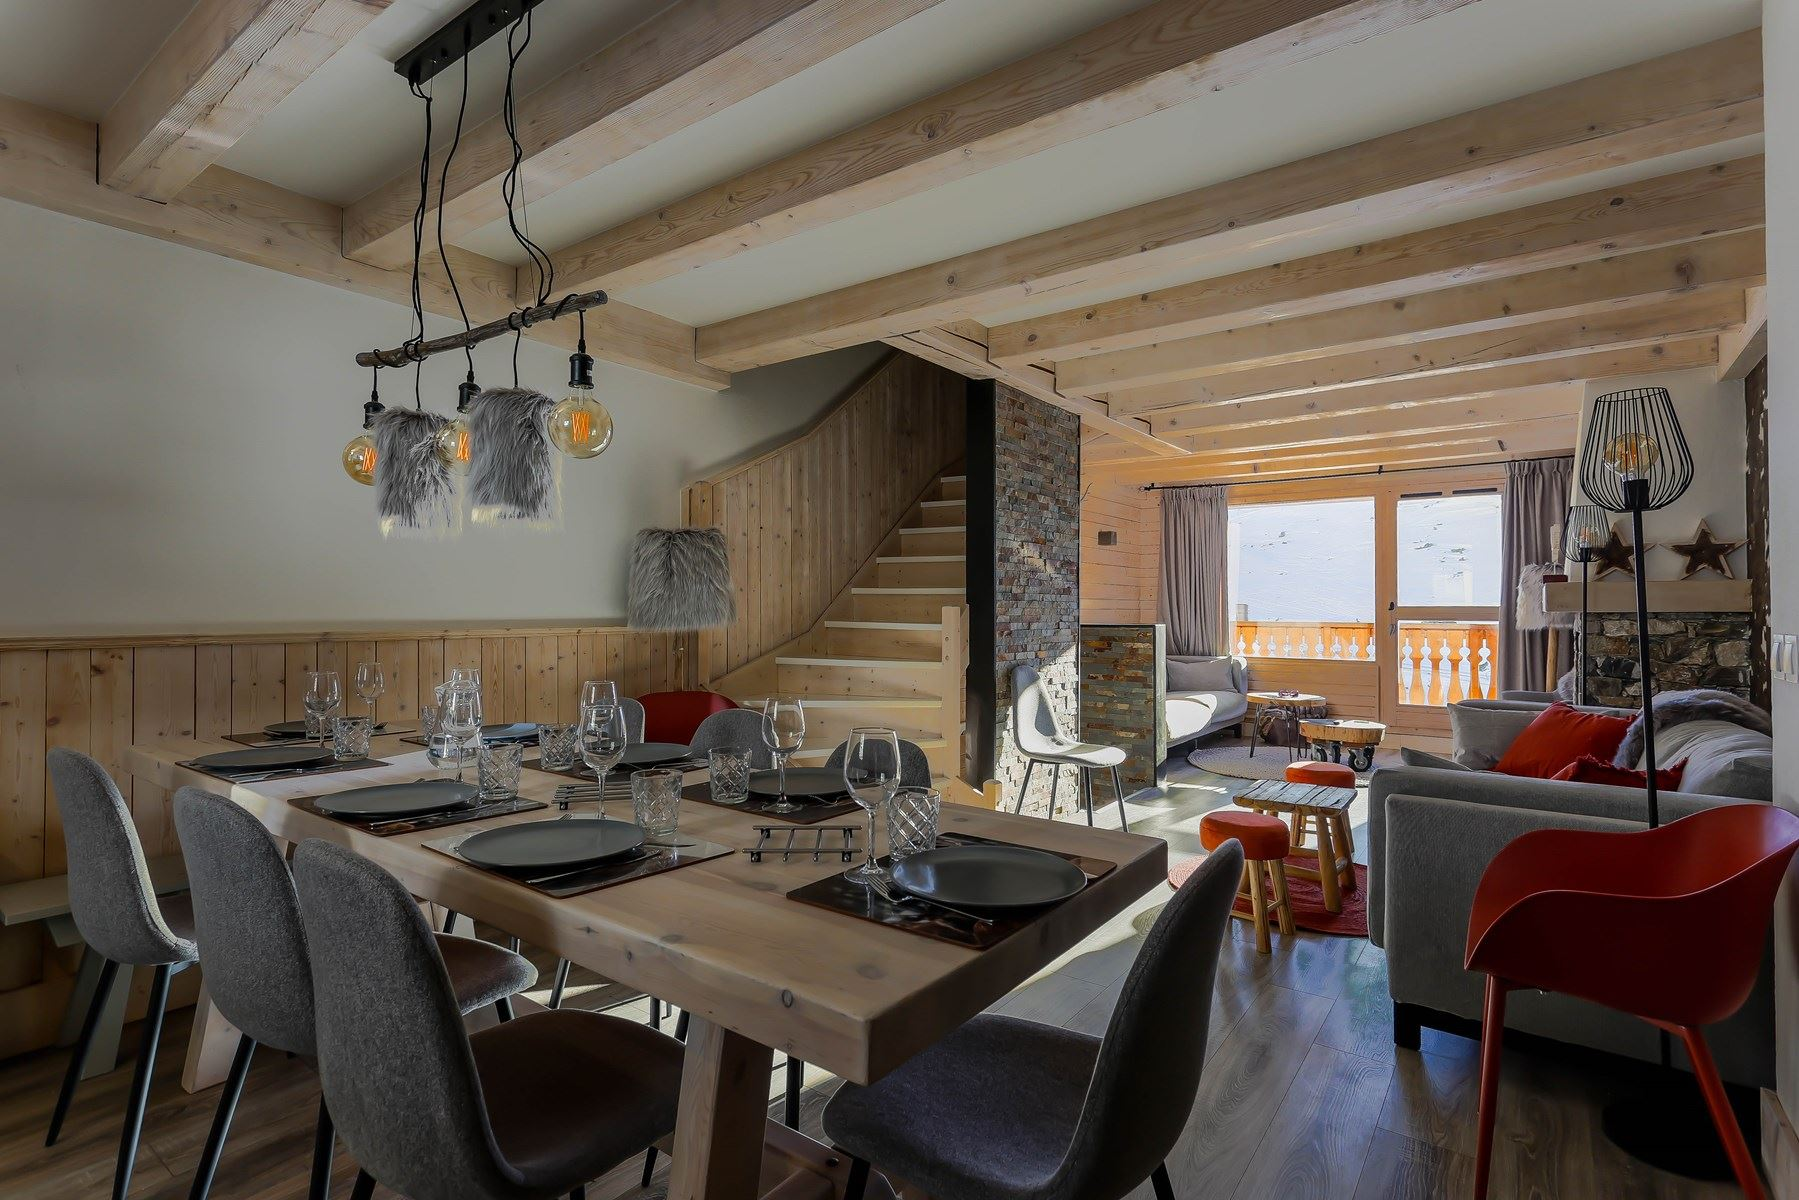 SELAOU 35 / APARTMENT CHALET 6 ROOMS 10 PERSONS - 4 SILVER SNOWFLAKES - ADA